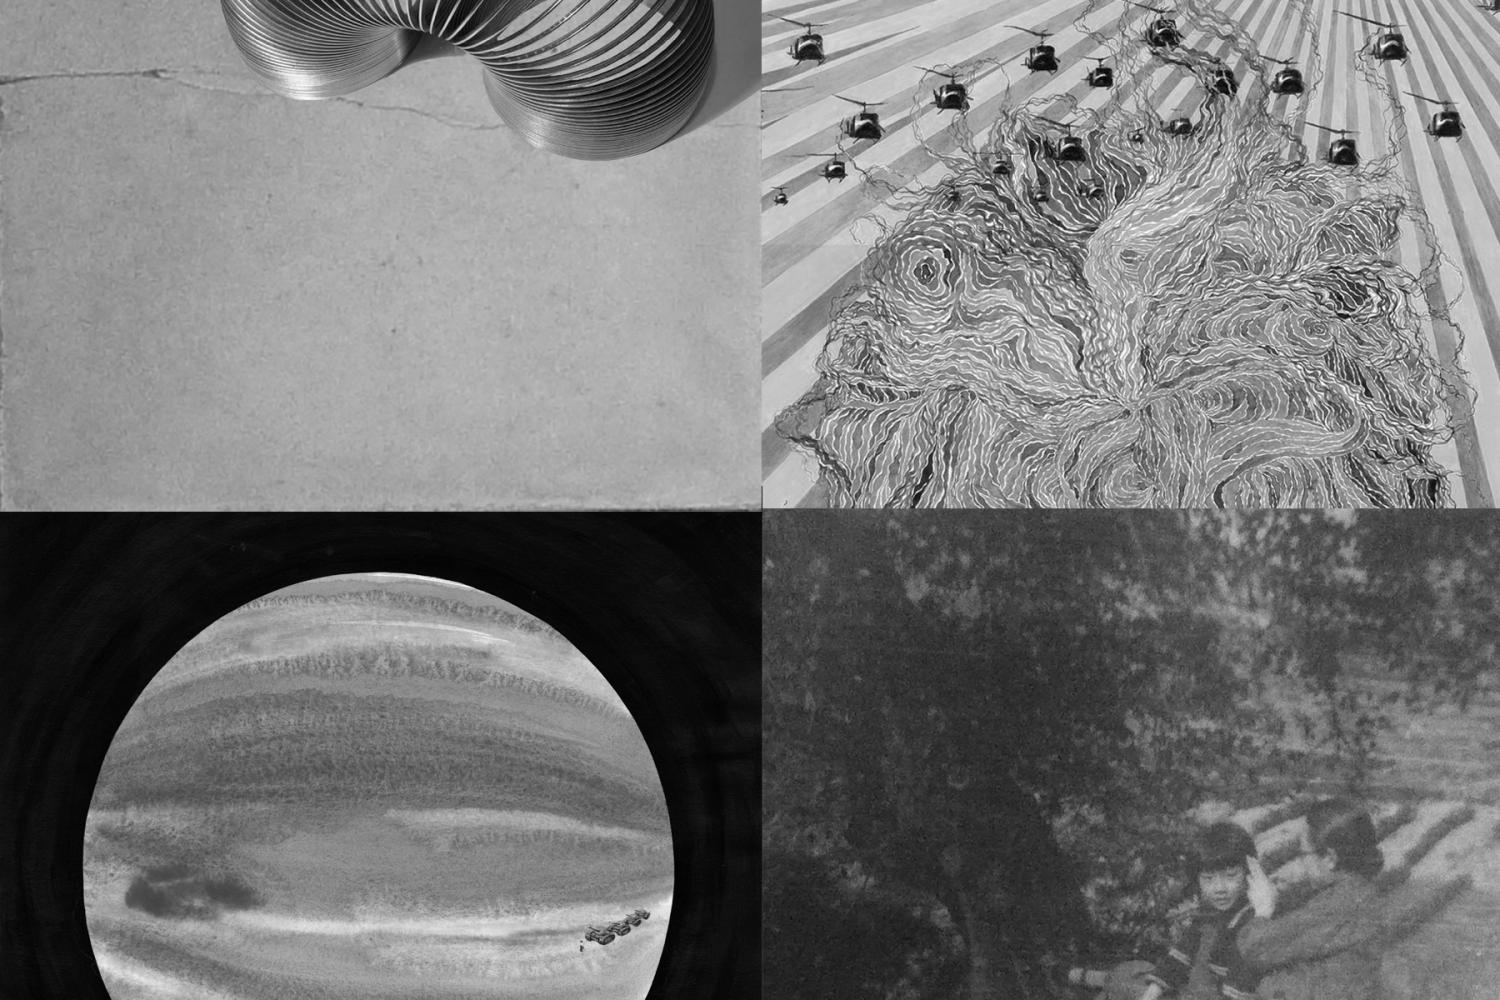 black and white details of objects